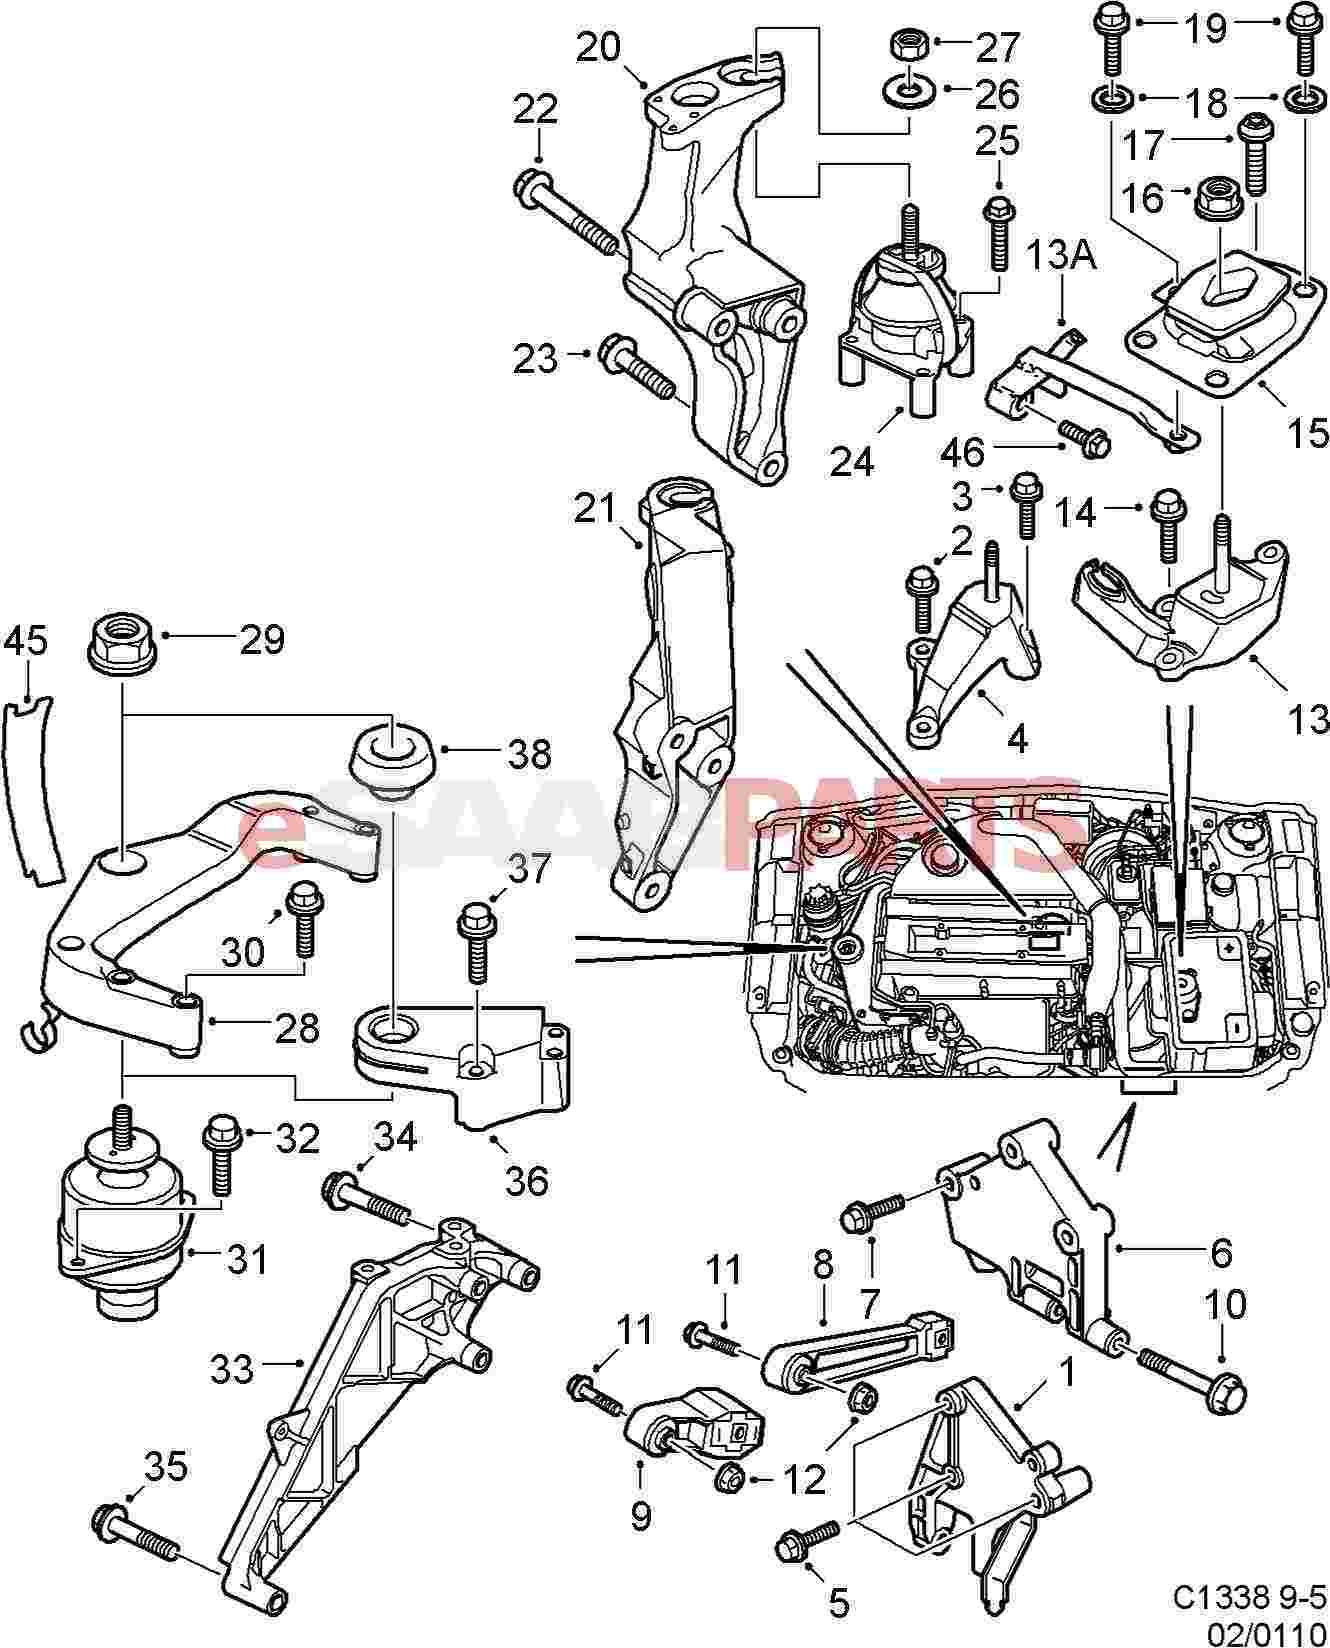 Groovy 1999 Saab 9 3 Engine Diagram Wiring Diagram Wiring 101 Akebwellnesstrialsorg